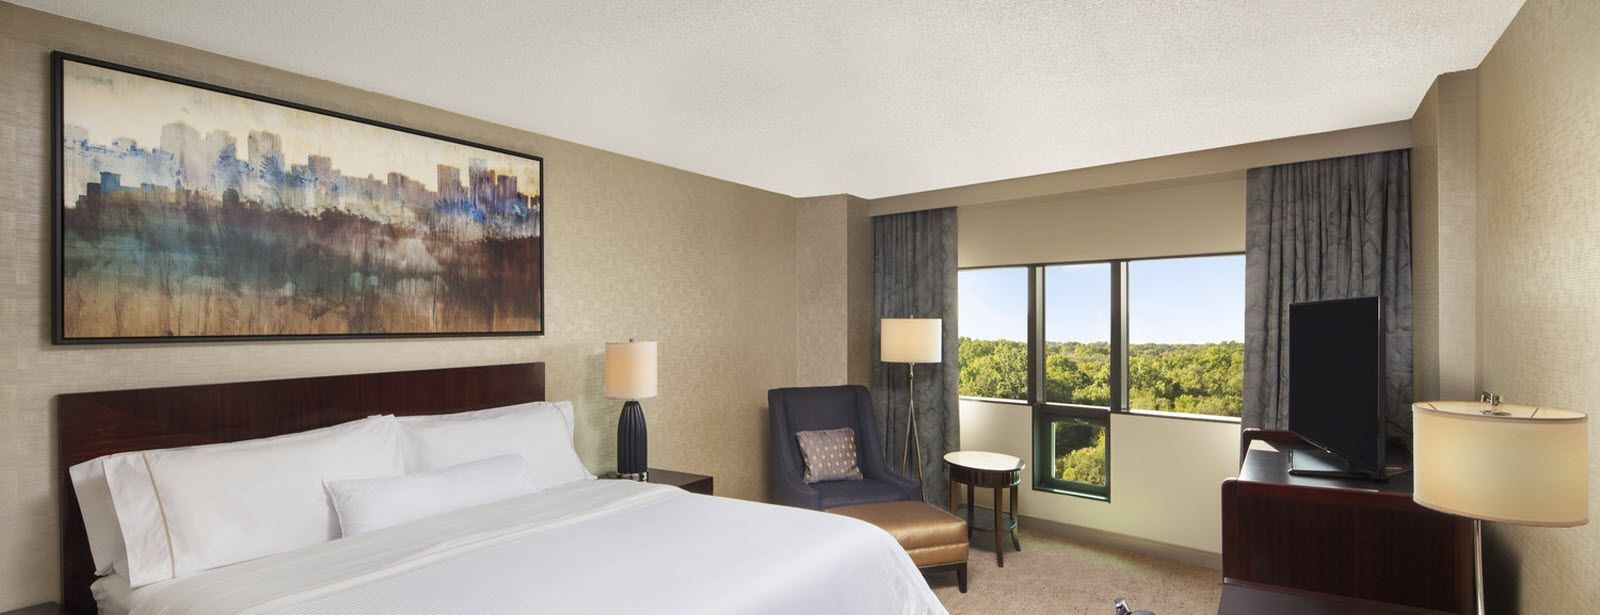 Executive King Bed Guest Room | The Westin Southfield Detroit